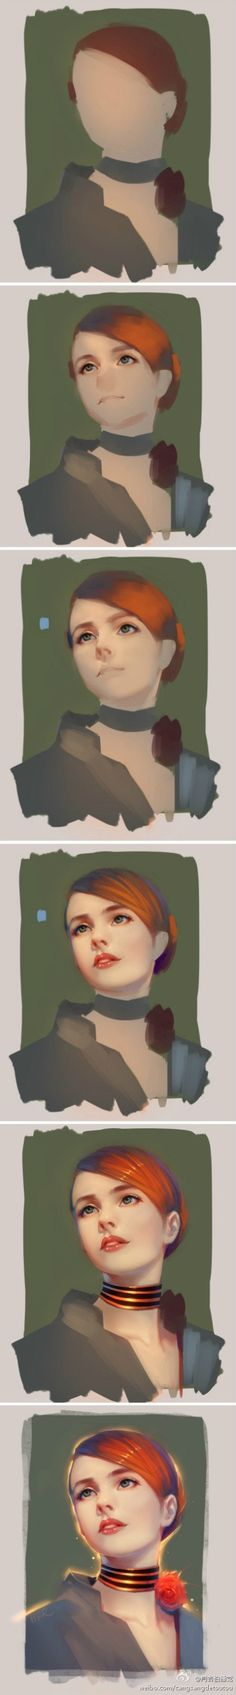 40 Ideas Drawing Portrait Tutorial Step By Step Digital Paintings Digital Painting Tutorials, Digital Art Tutorial, Art Tutorials, Digital Paintings, Drawing Tutorials, Process Art, Painting Process, Painting & Drawing, Drawing Process